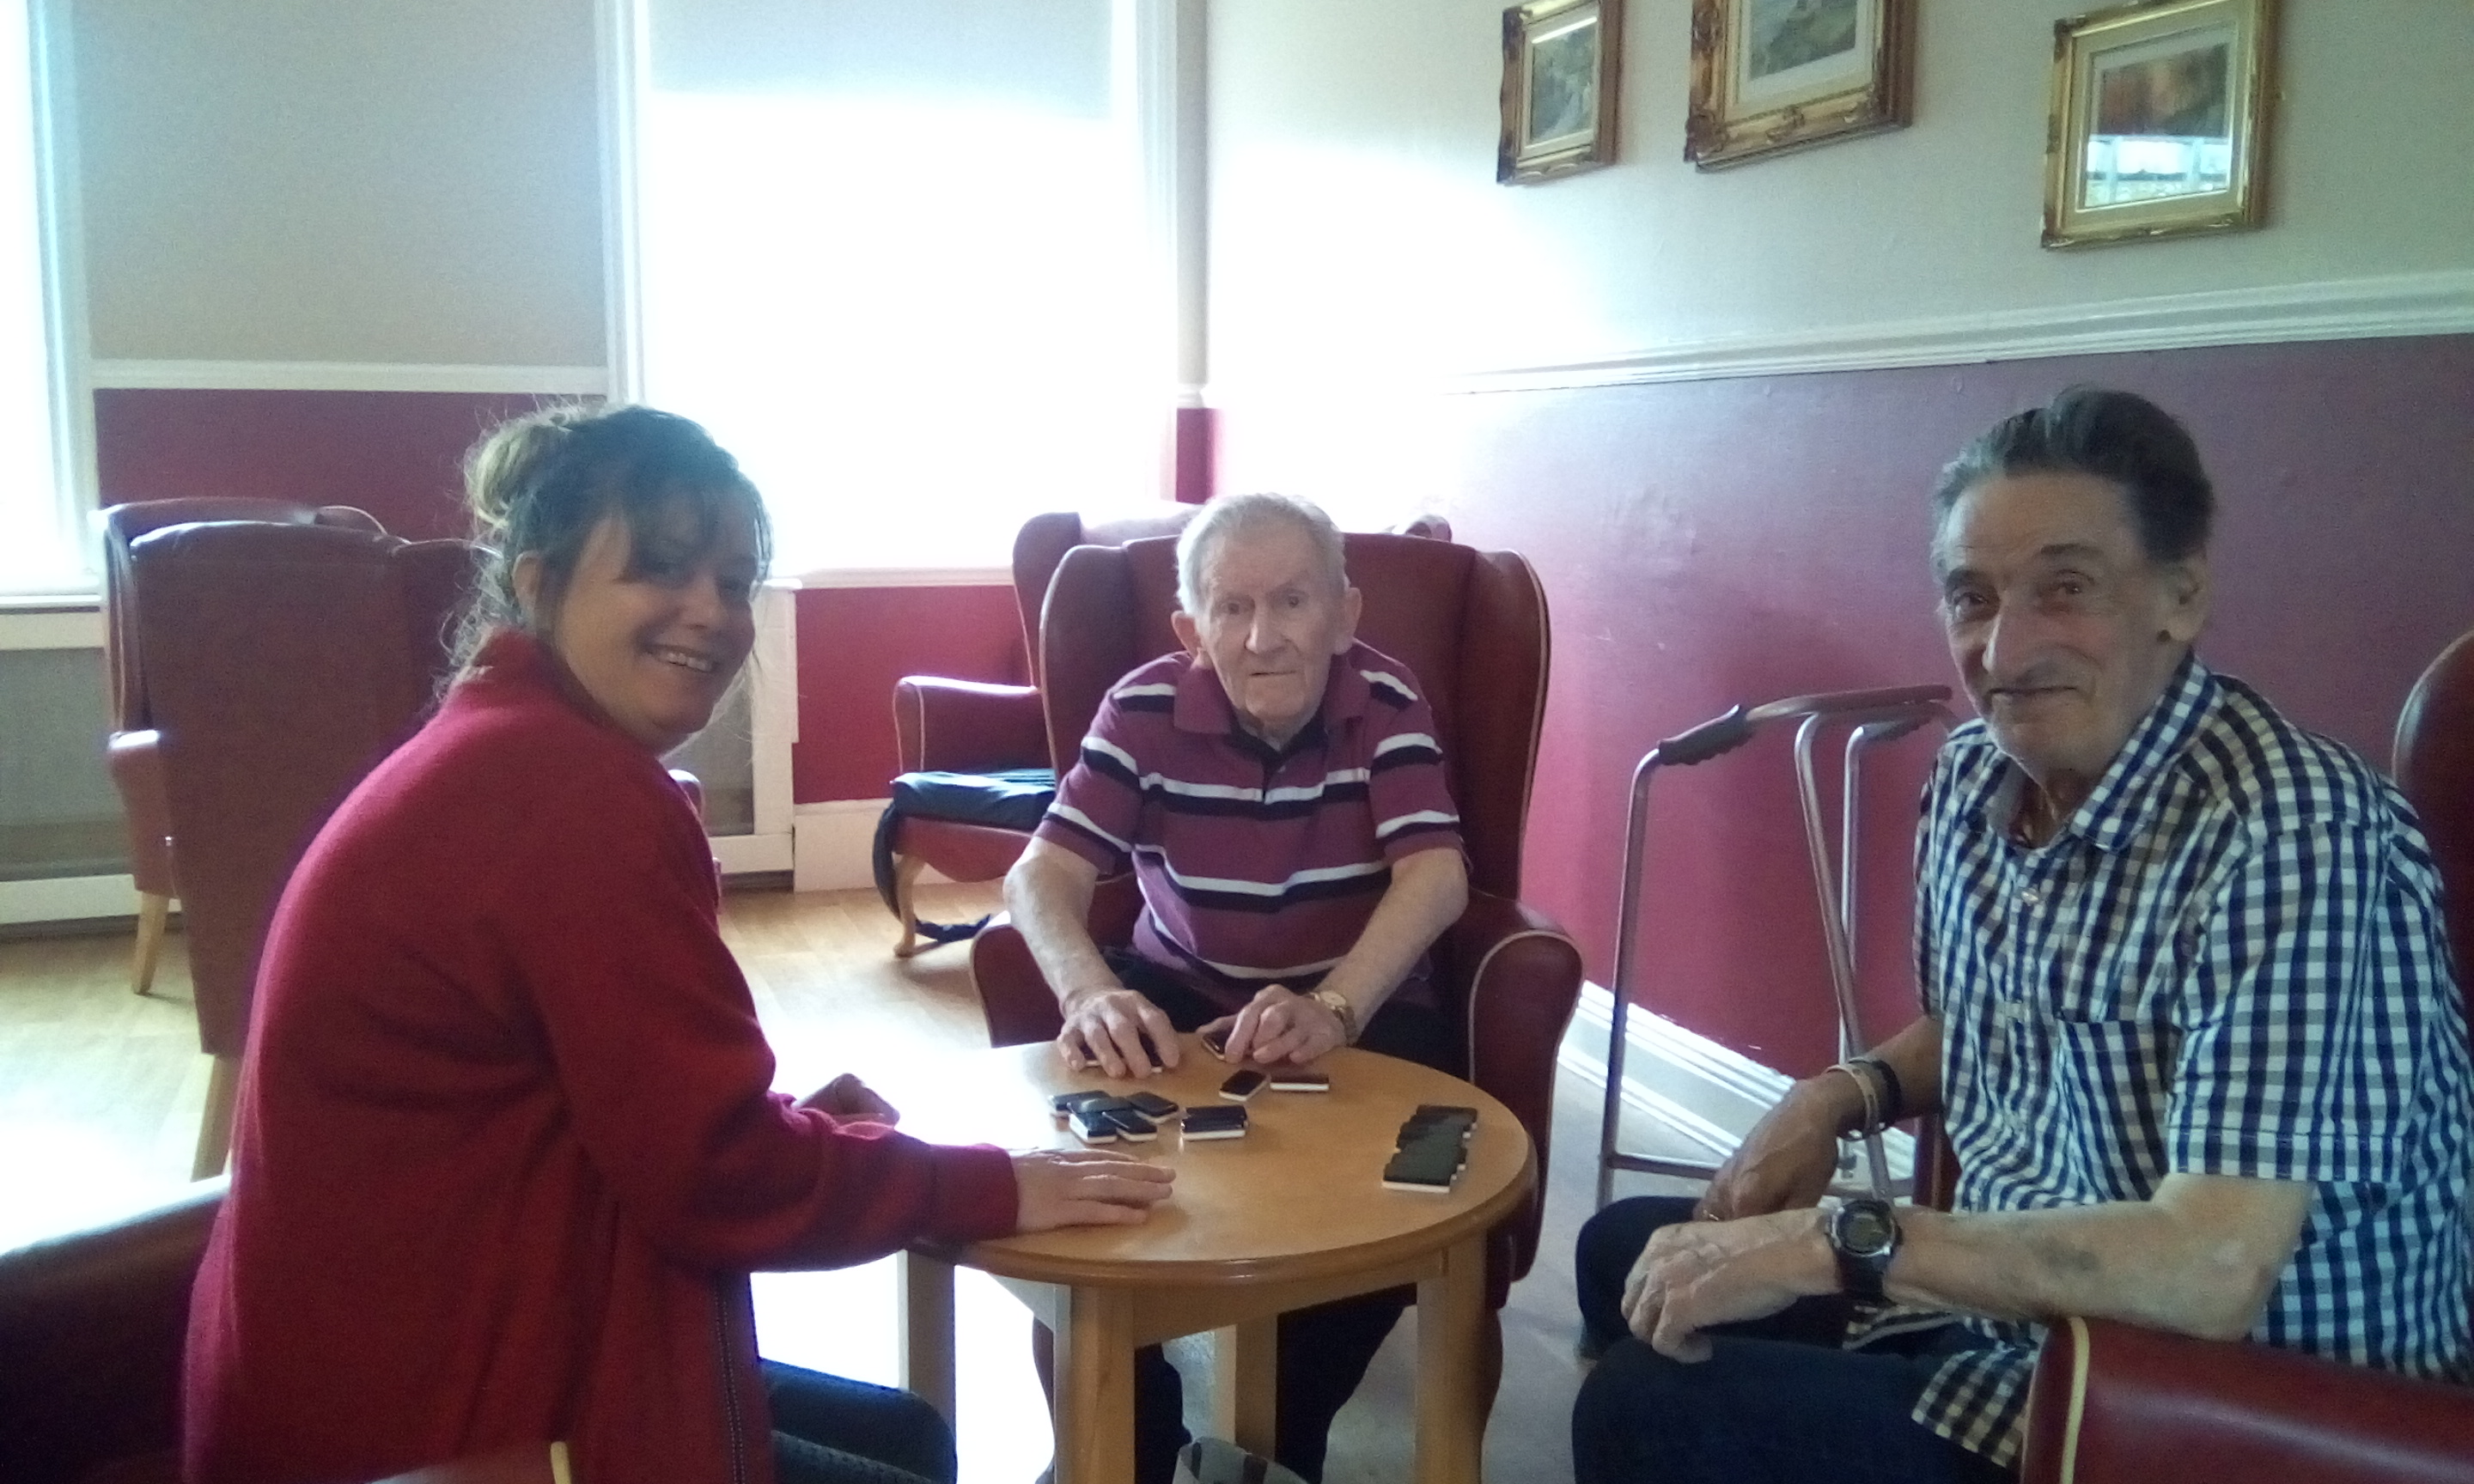 Motivation & Co play dominos at Victoria House Care Centre: Key Healthcare is dedicated to caring for elderly residents in safe. We have multiple dementia care homes including our care home middlesbrough, our care home St. Helen and care home saltburn. We excel in monitoring and improving care levels.